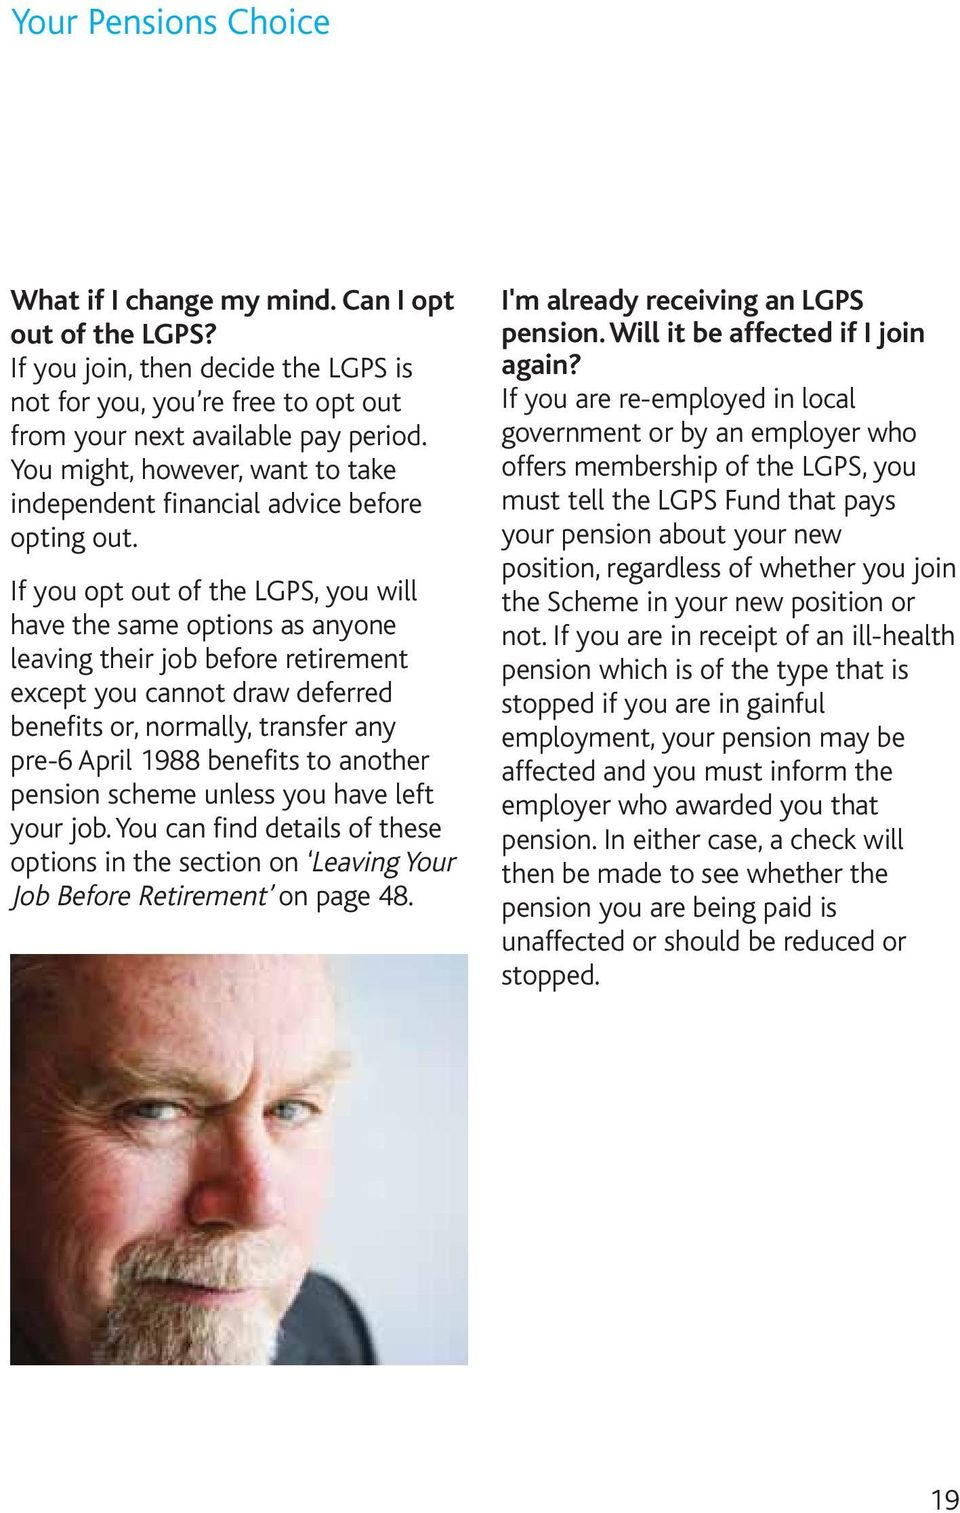 If you opt out of the LGPS, you will have the same options as anyone leaving their job before retirement except you cannot draw deferred benefits or, normally, transfer any pre-6 April 1988 benefits